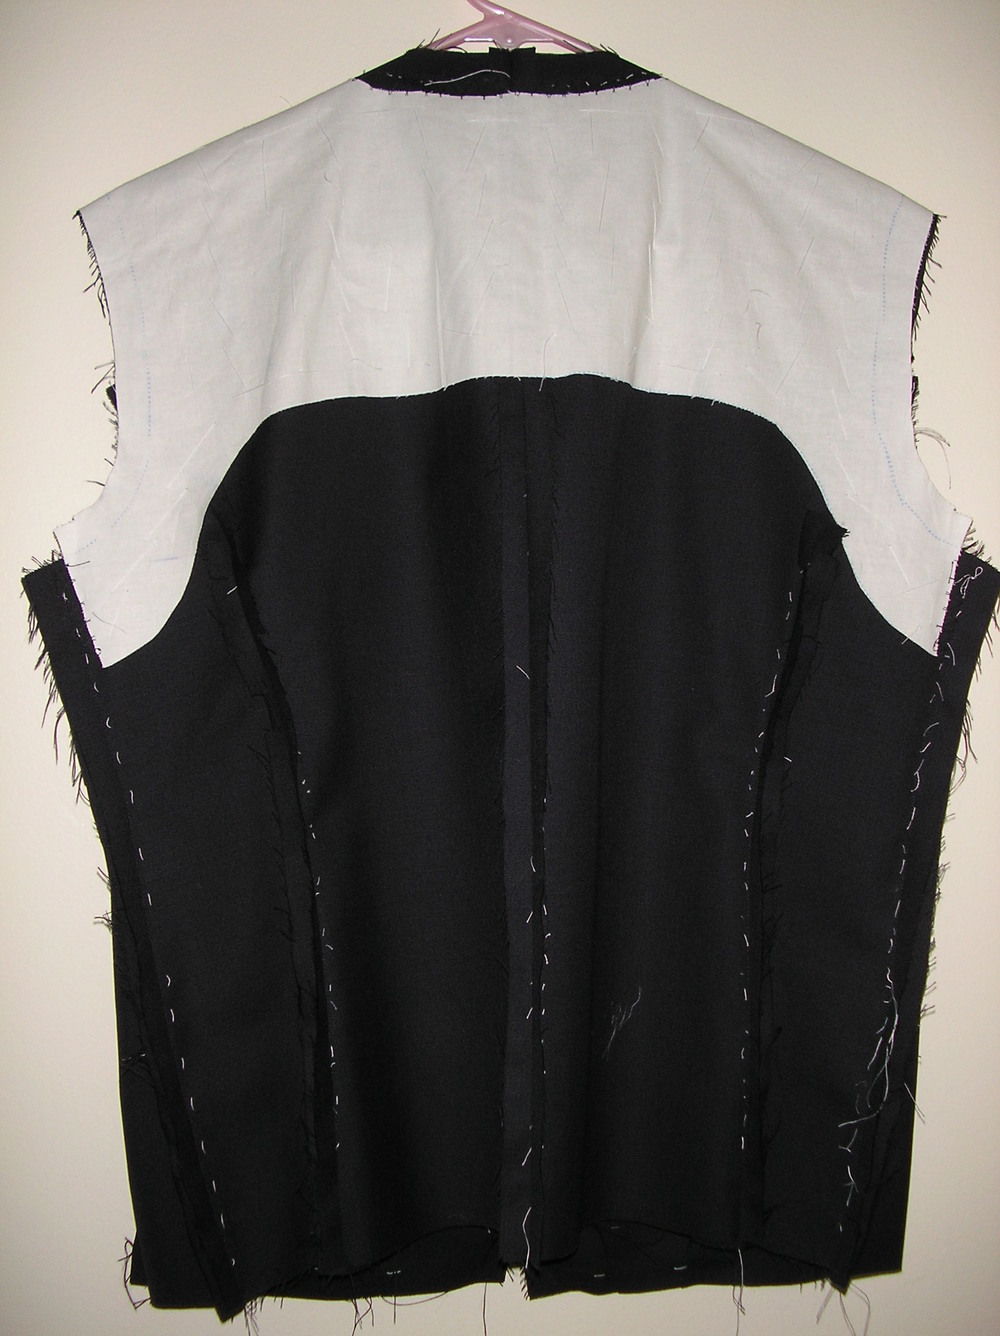 Inside back: muslin and basting